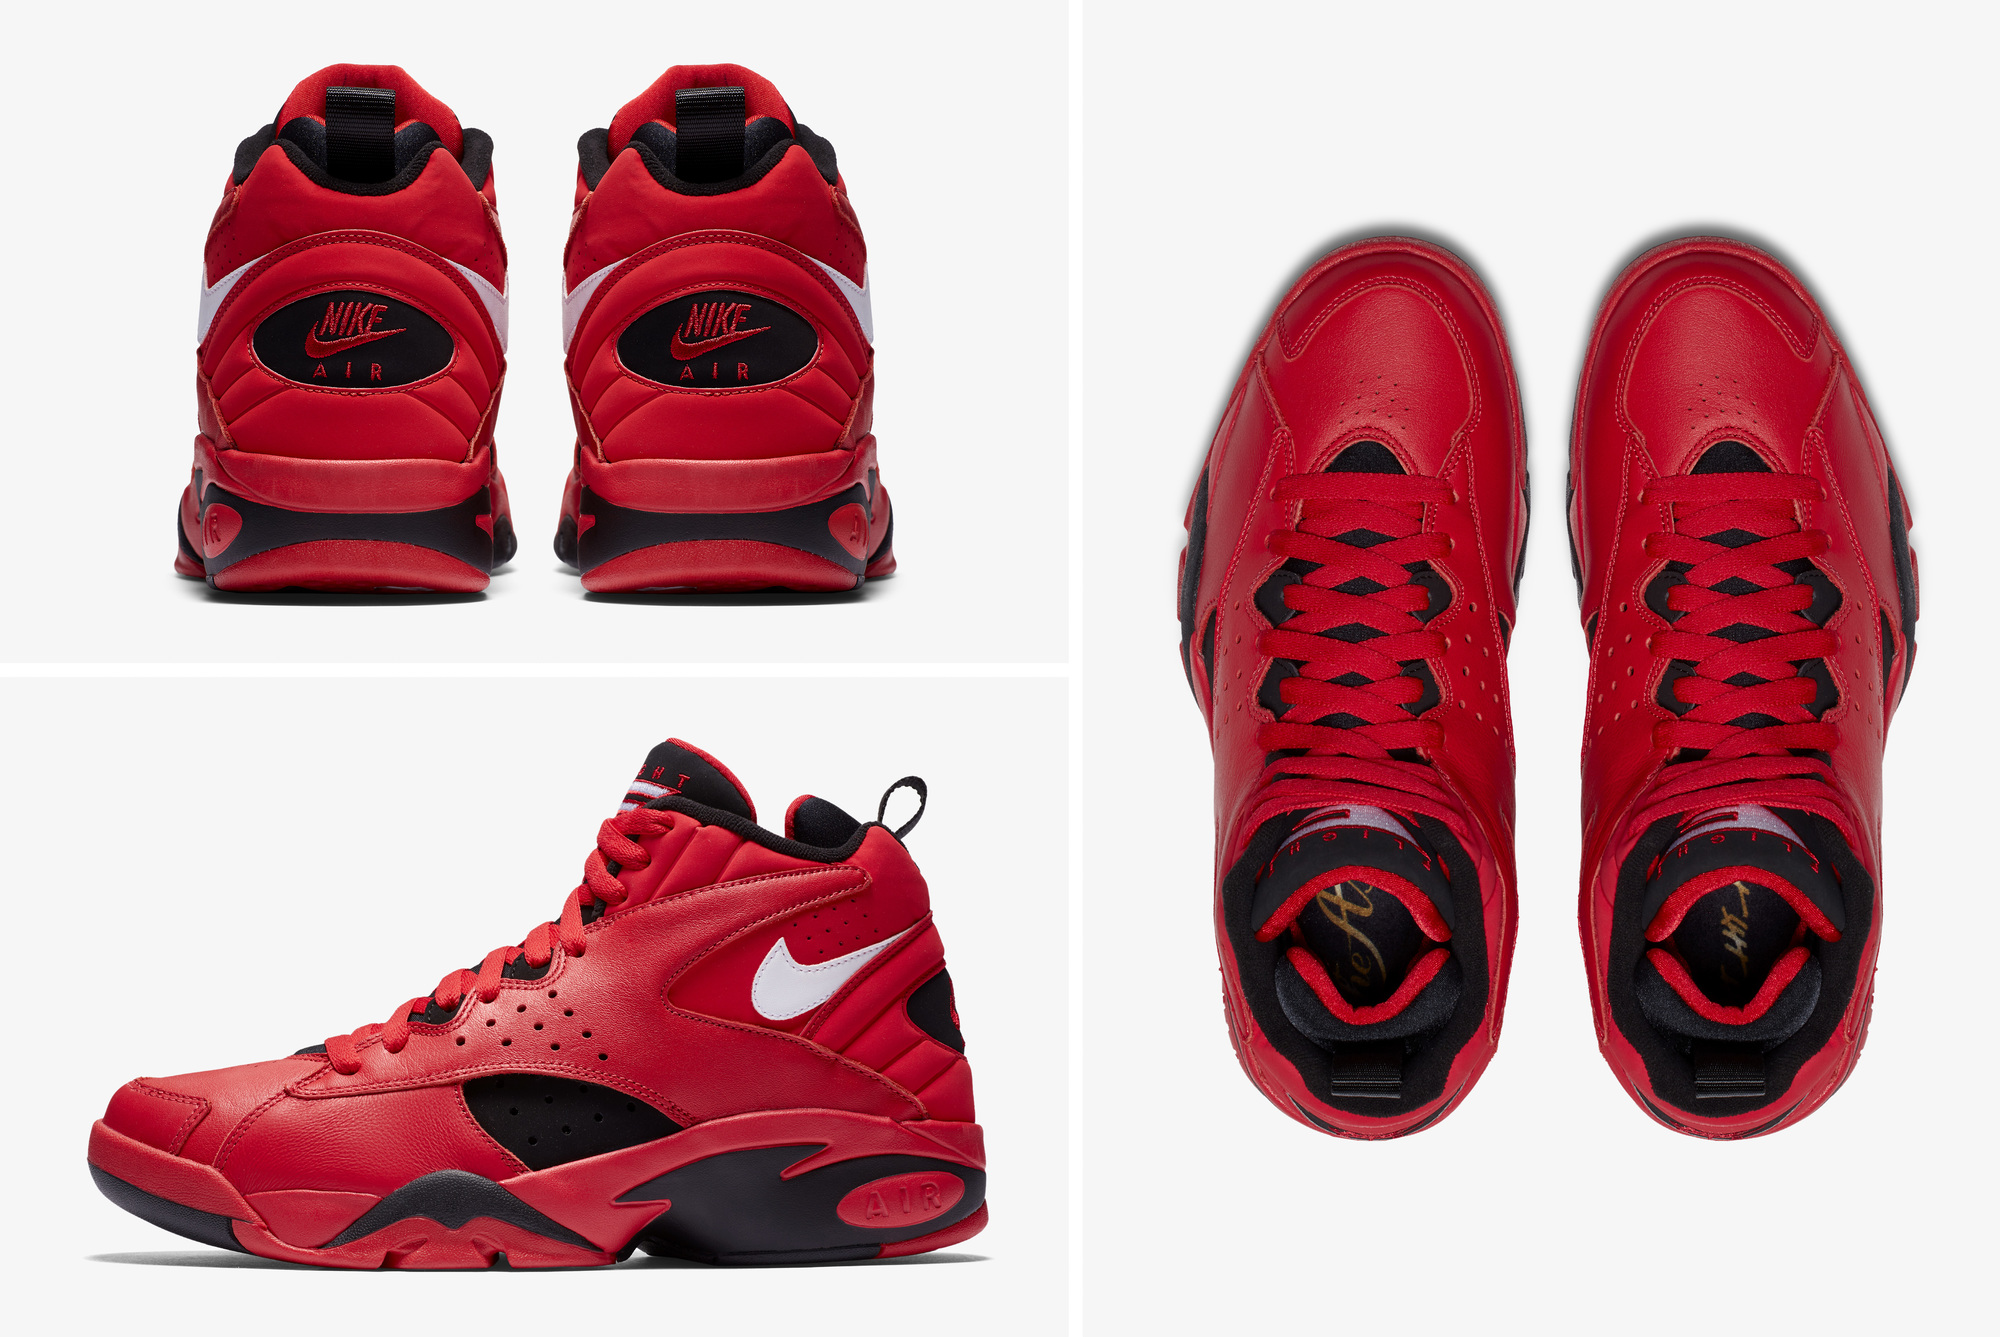 Nike Air Maestro II trifecta scottie pippen